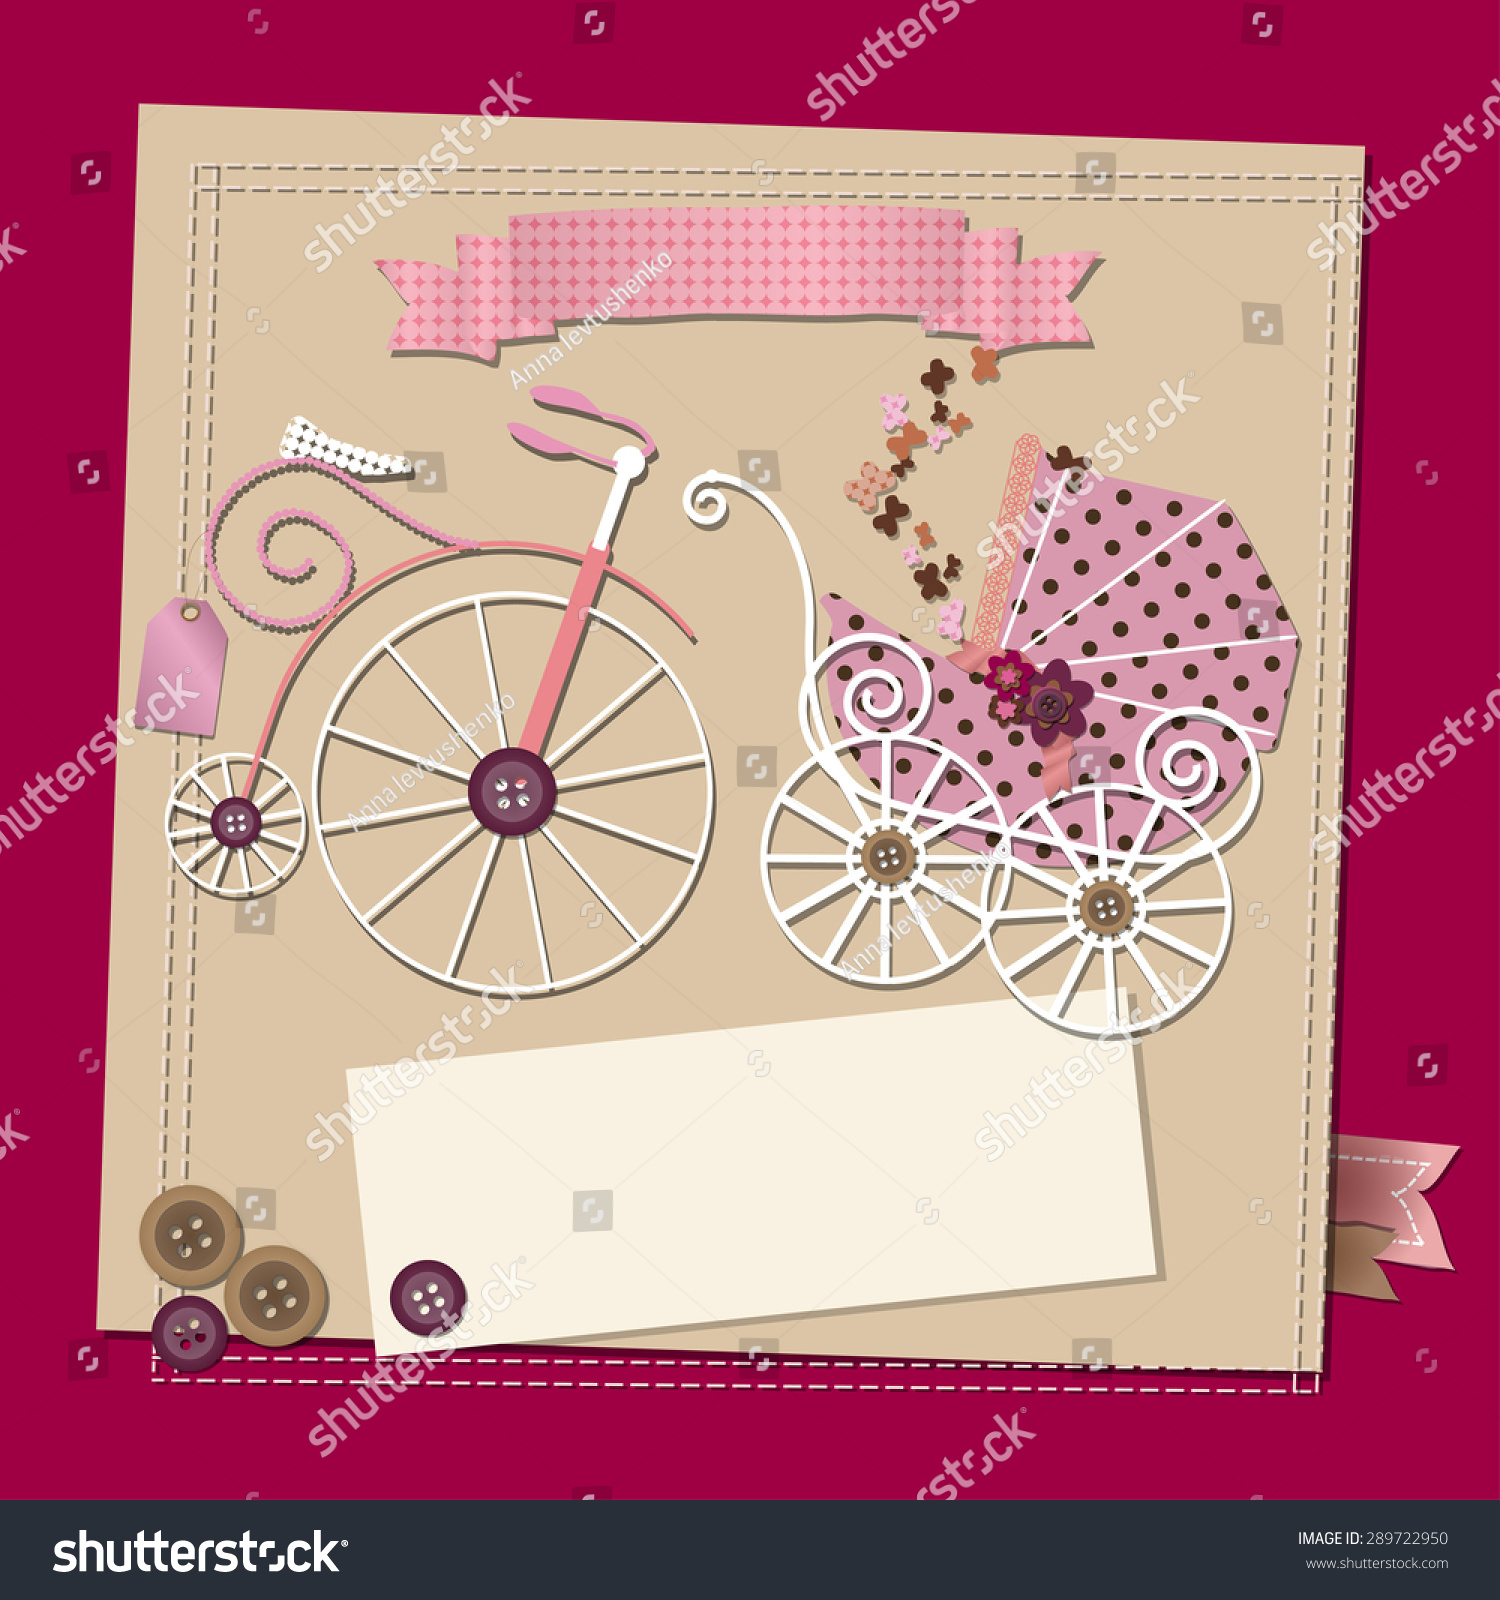 Raster baby girl shower invitation template stock illustration raster baby girl shower invitation template illustration with a vintage stroller and a bicycle filmwisefo